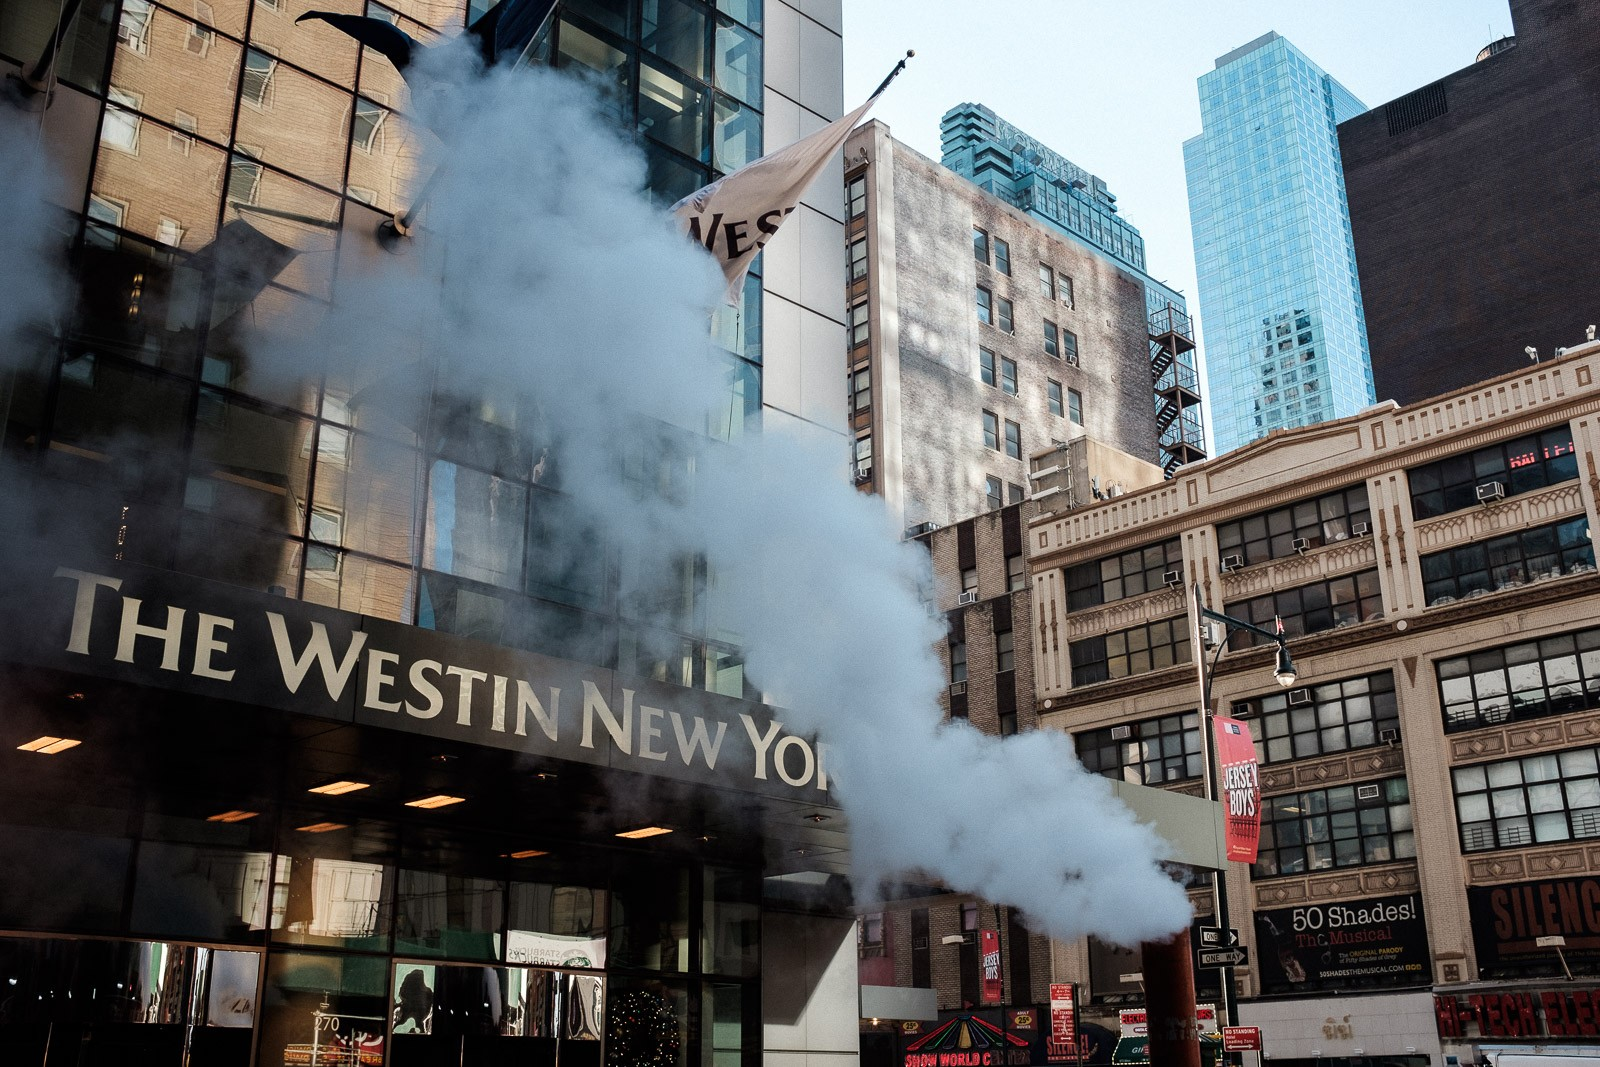 the westin new york grand central with steam from sewers